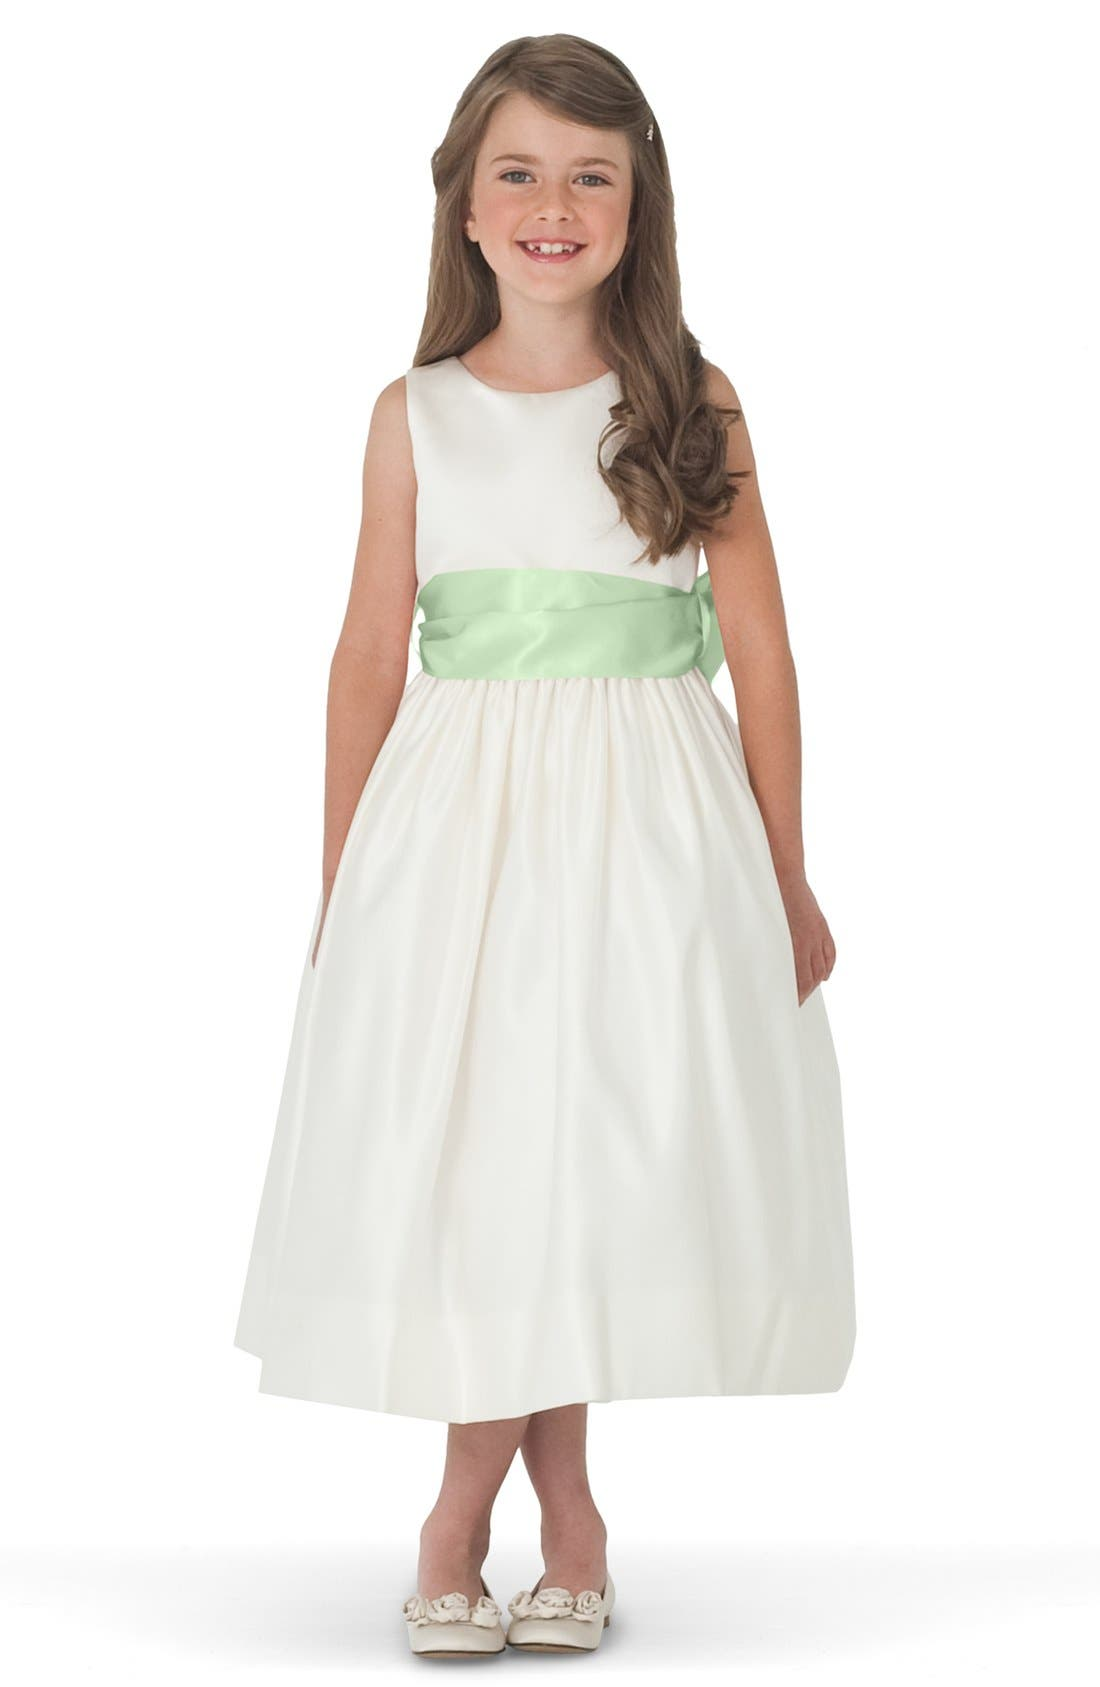 Sleeveless Satin Dress with Contrast Sash,                         Main,                         color, Ivory/ Mint